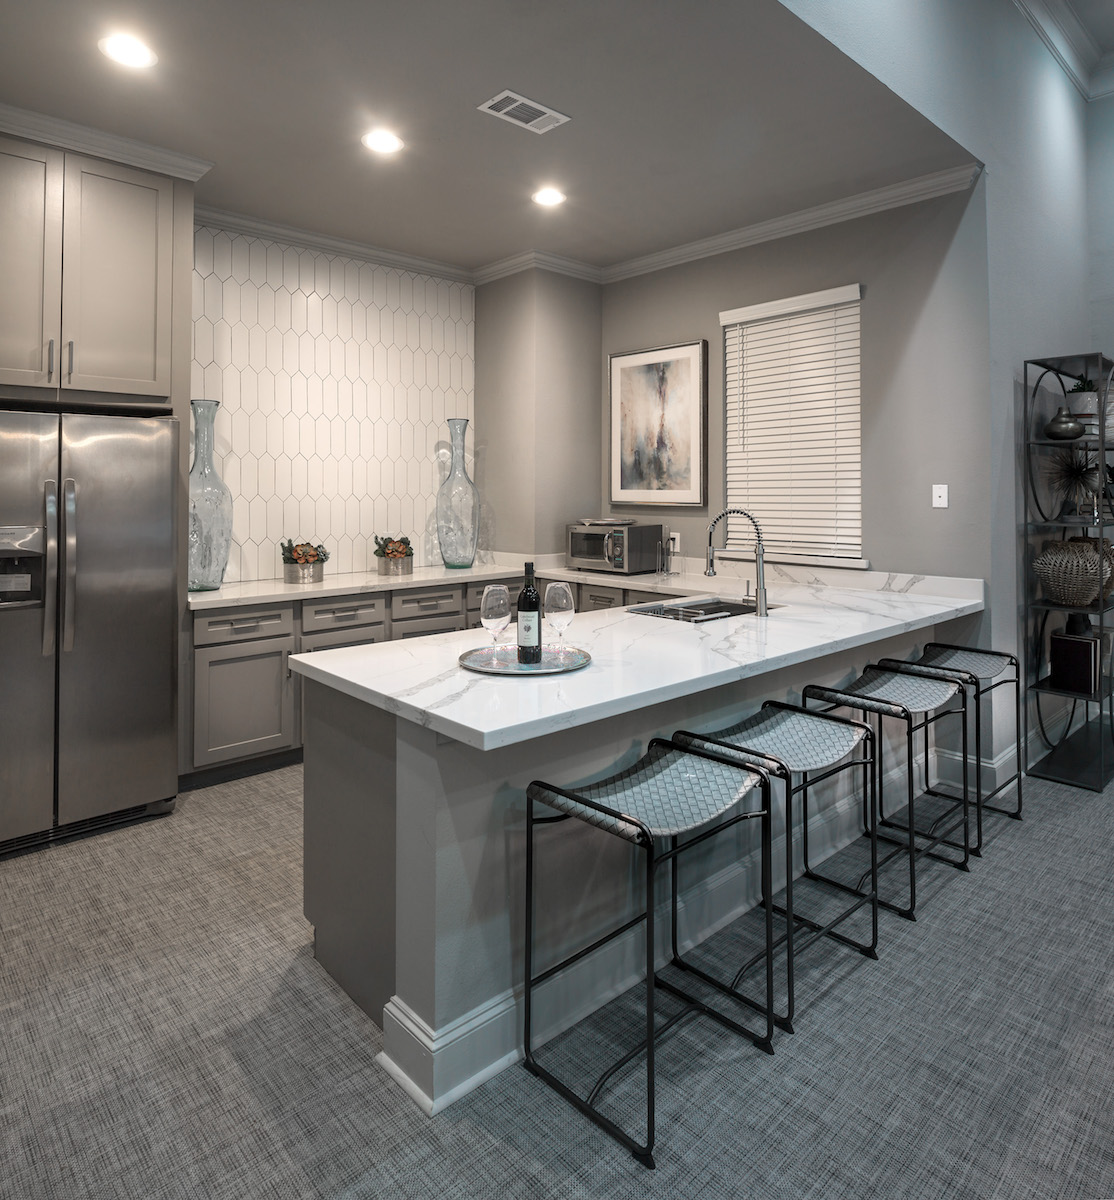 Community Kitchen at The Link, a Community of Luxury Apartments in Houston, Texas